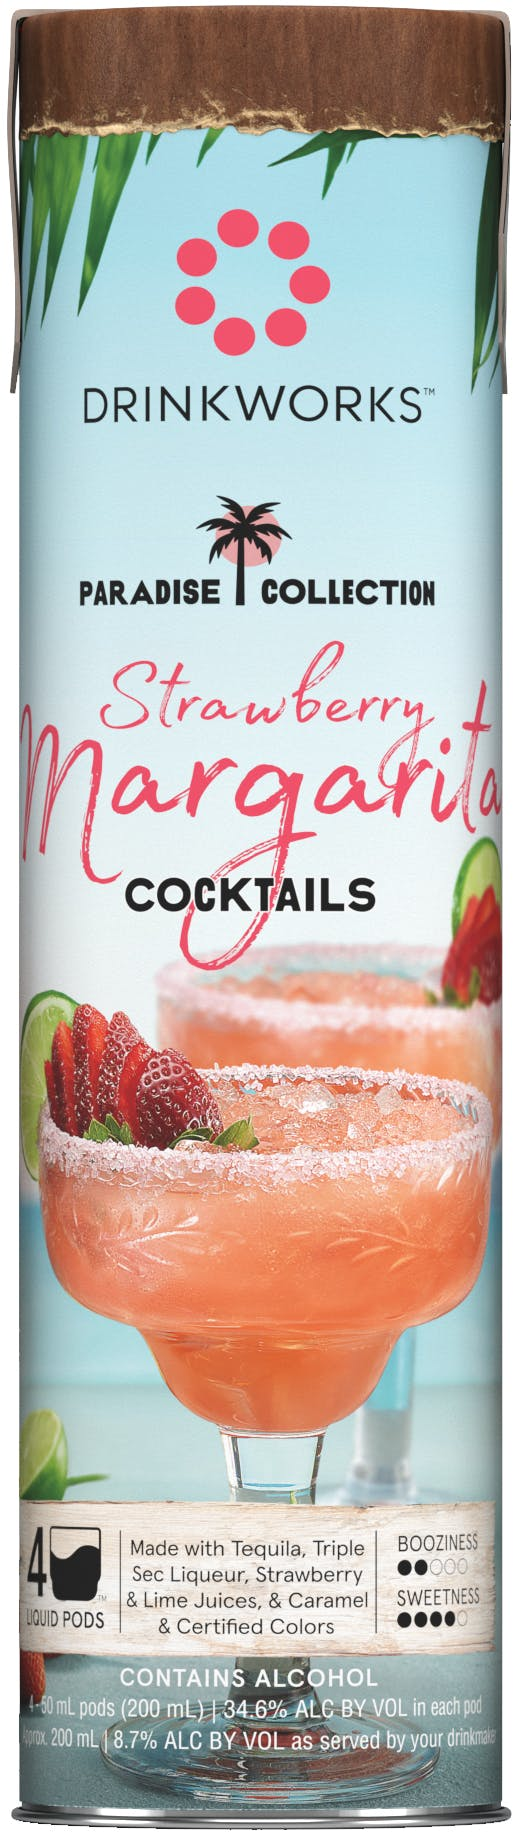 Drinkworks Strawberry Margarita 50ml Cool Springs Wines And Spirits